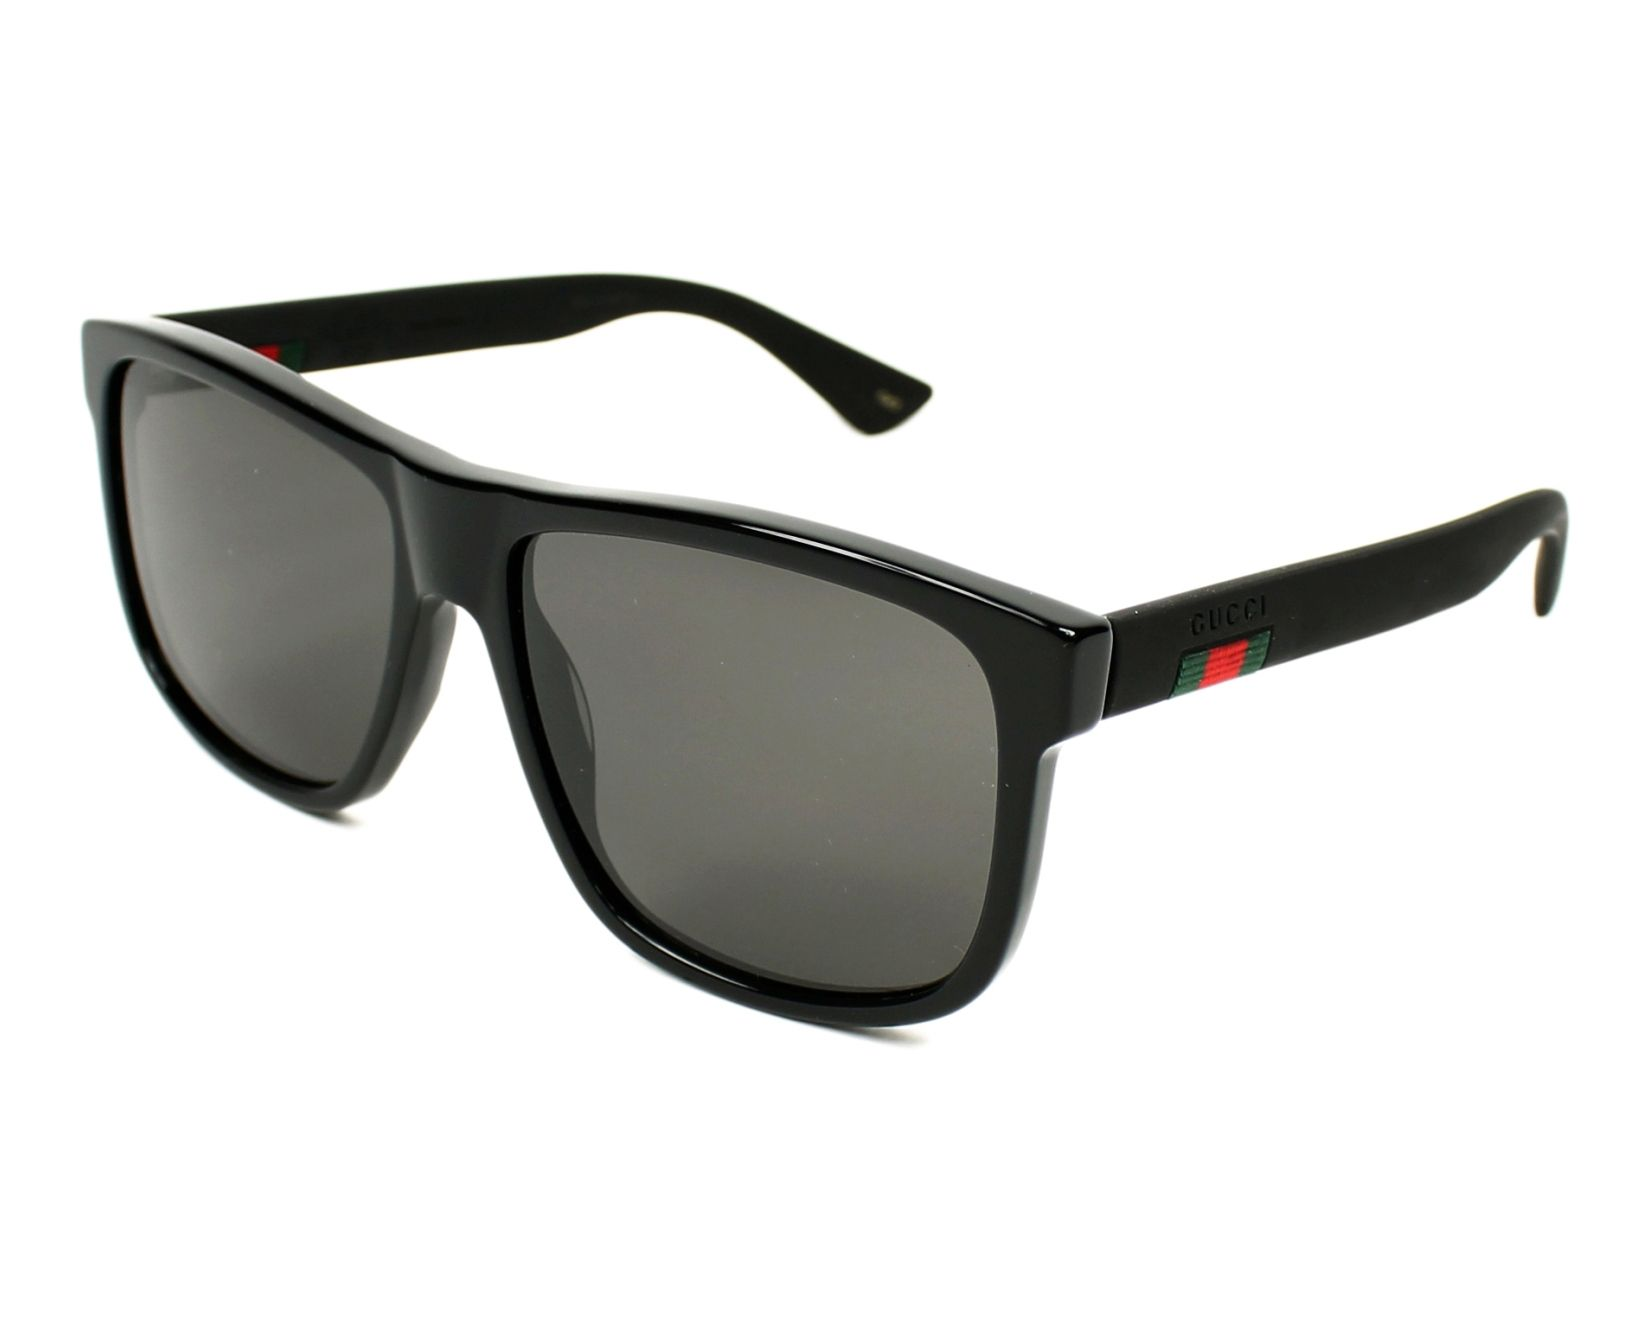 f68056a3de3 Sunglasses Gucci GG-0010-S 001 58-16 Black Black profile view